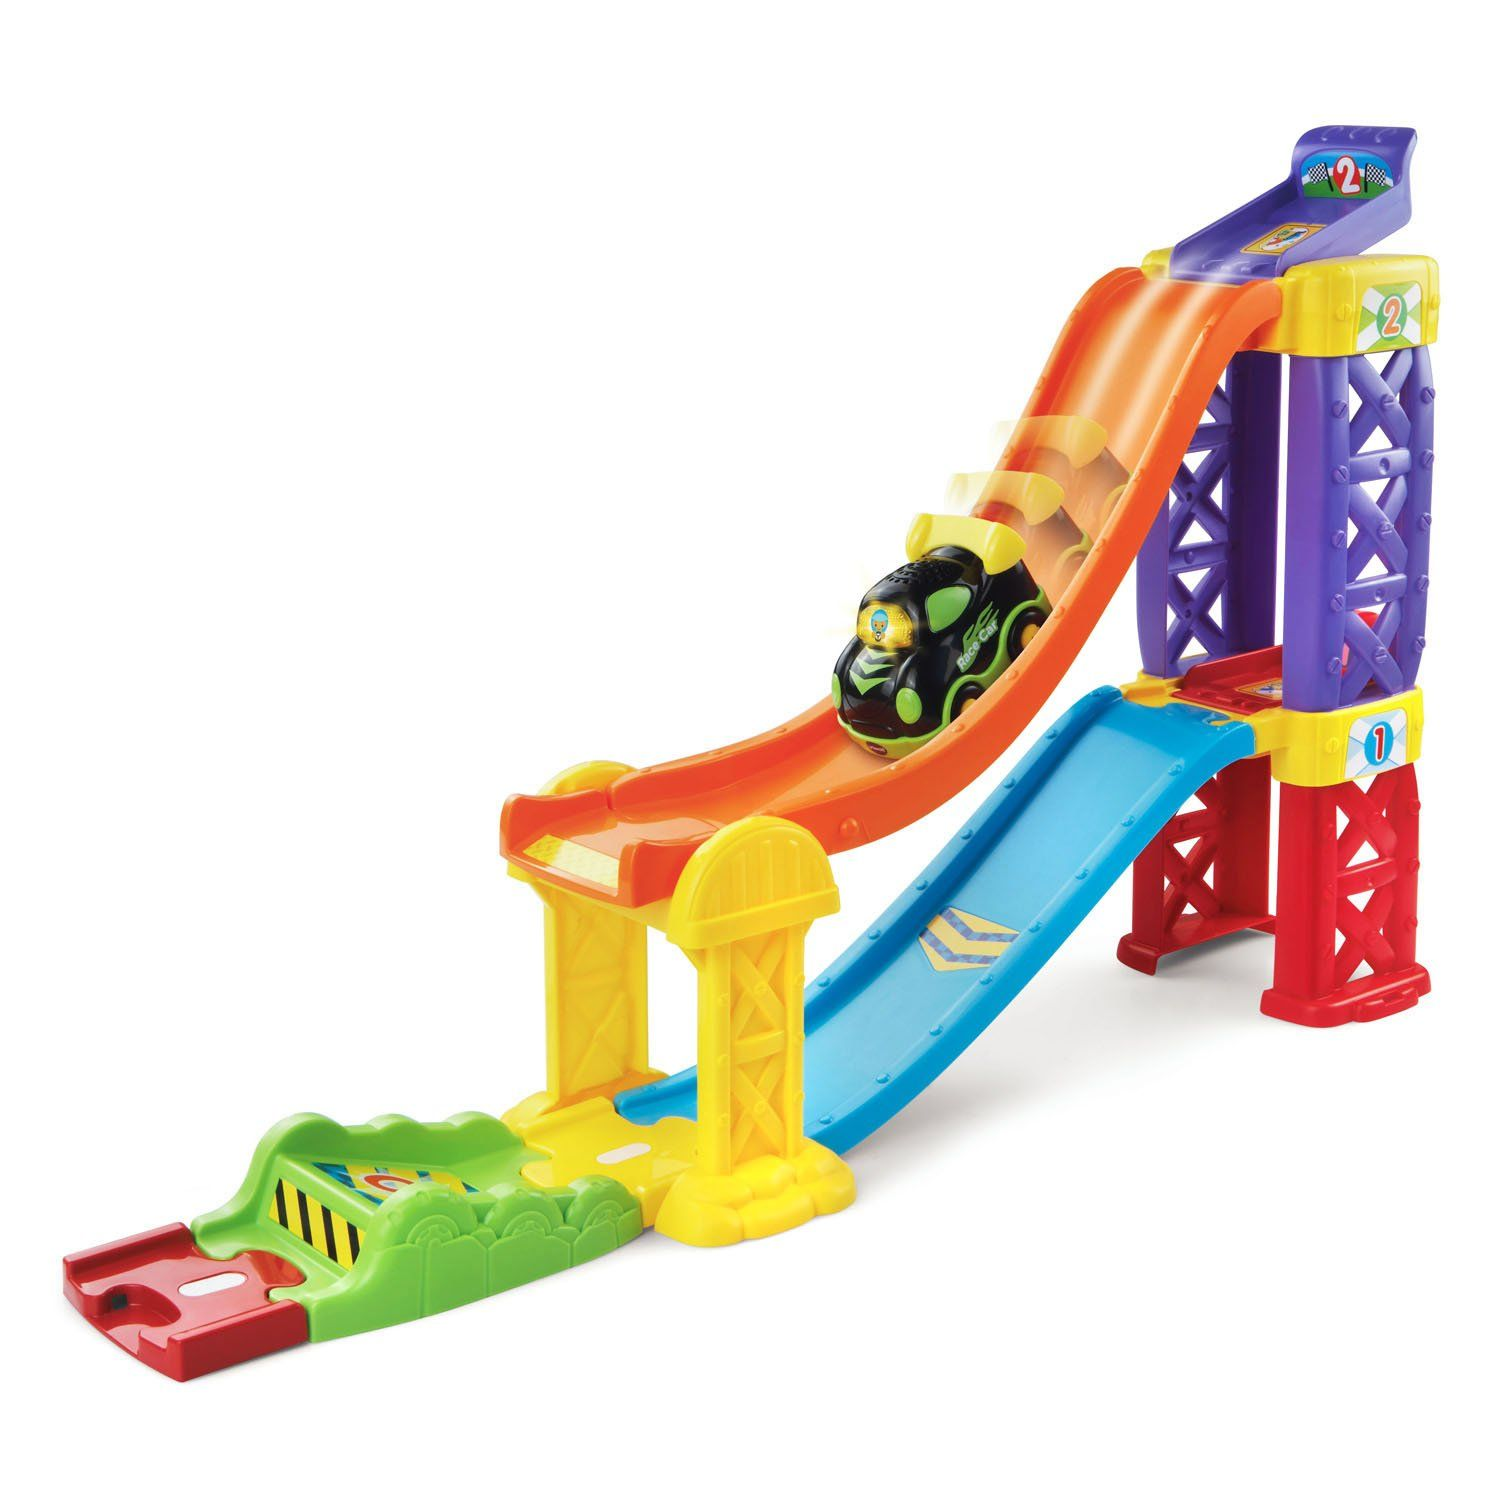 VTech Go! Go! Smart Wheels 3in1 Launch and Play Raceway